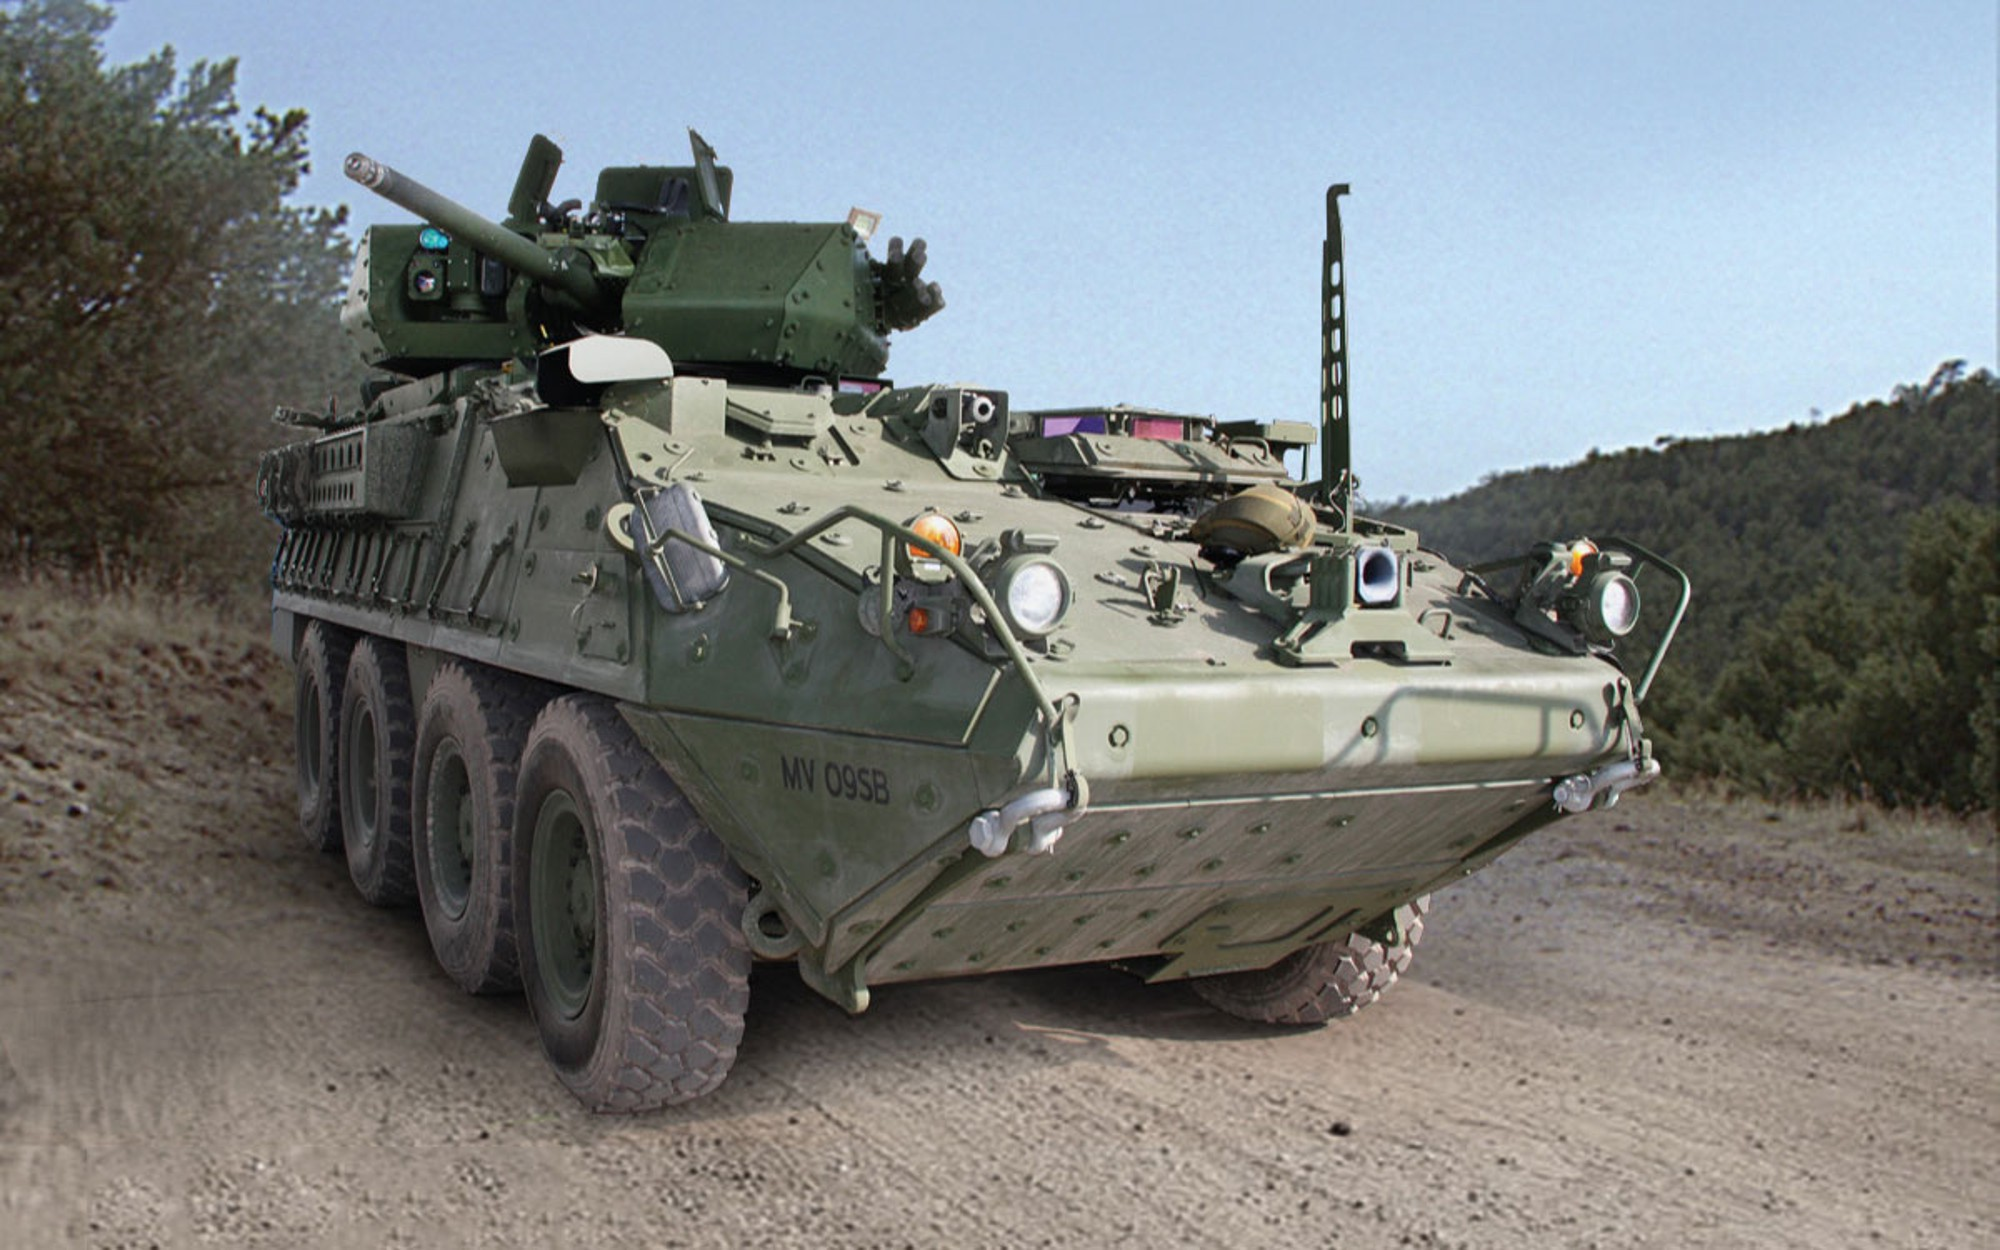 At top — BAE's prototype Armored Multipurpose Vehicle. Image: US Army photos